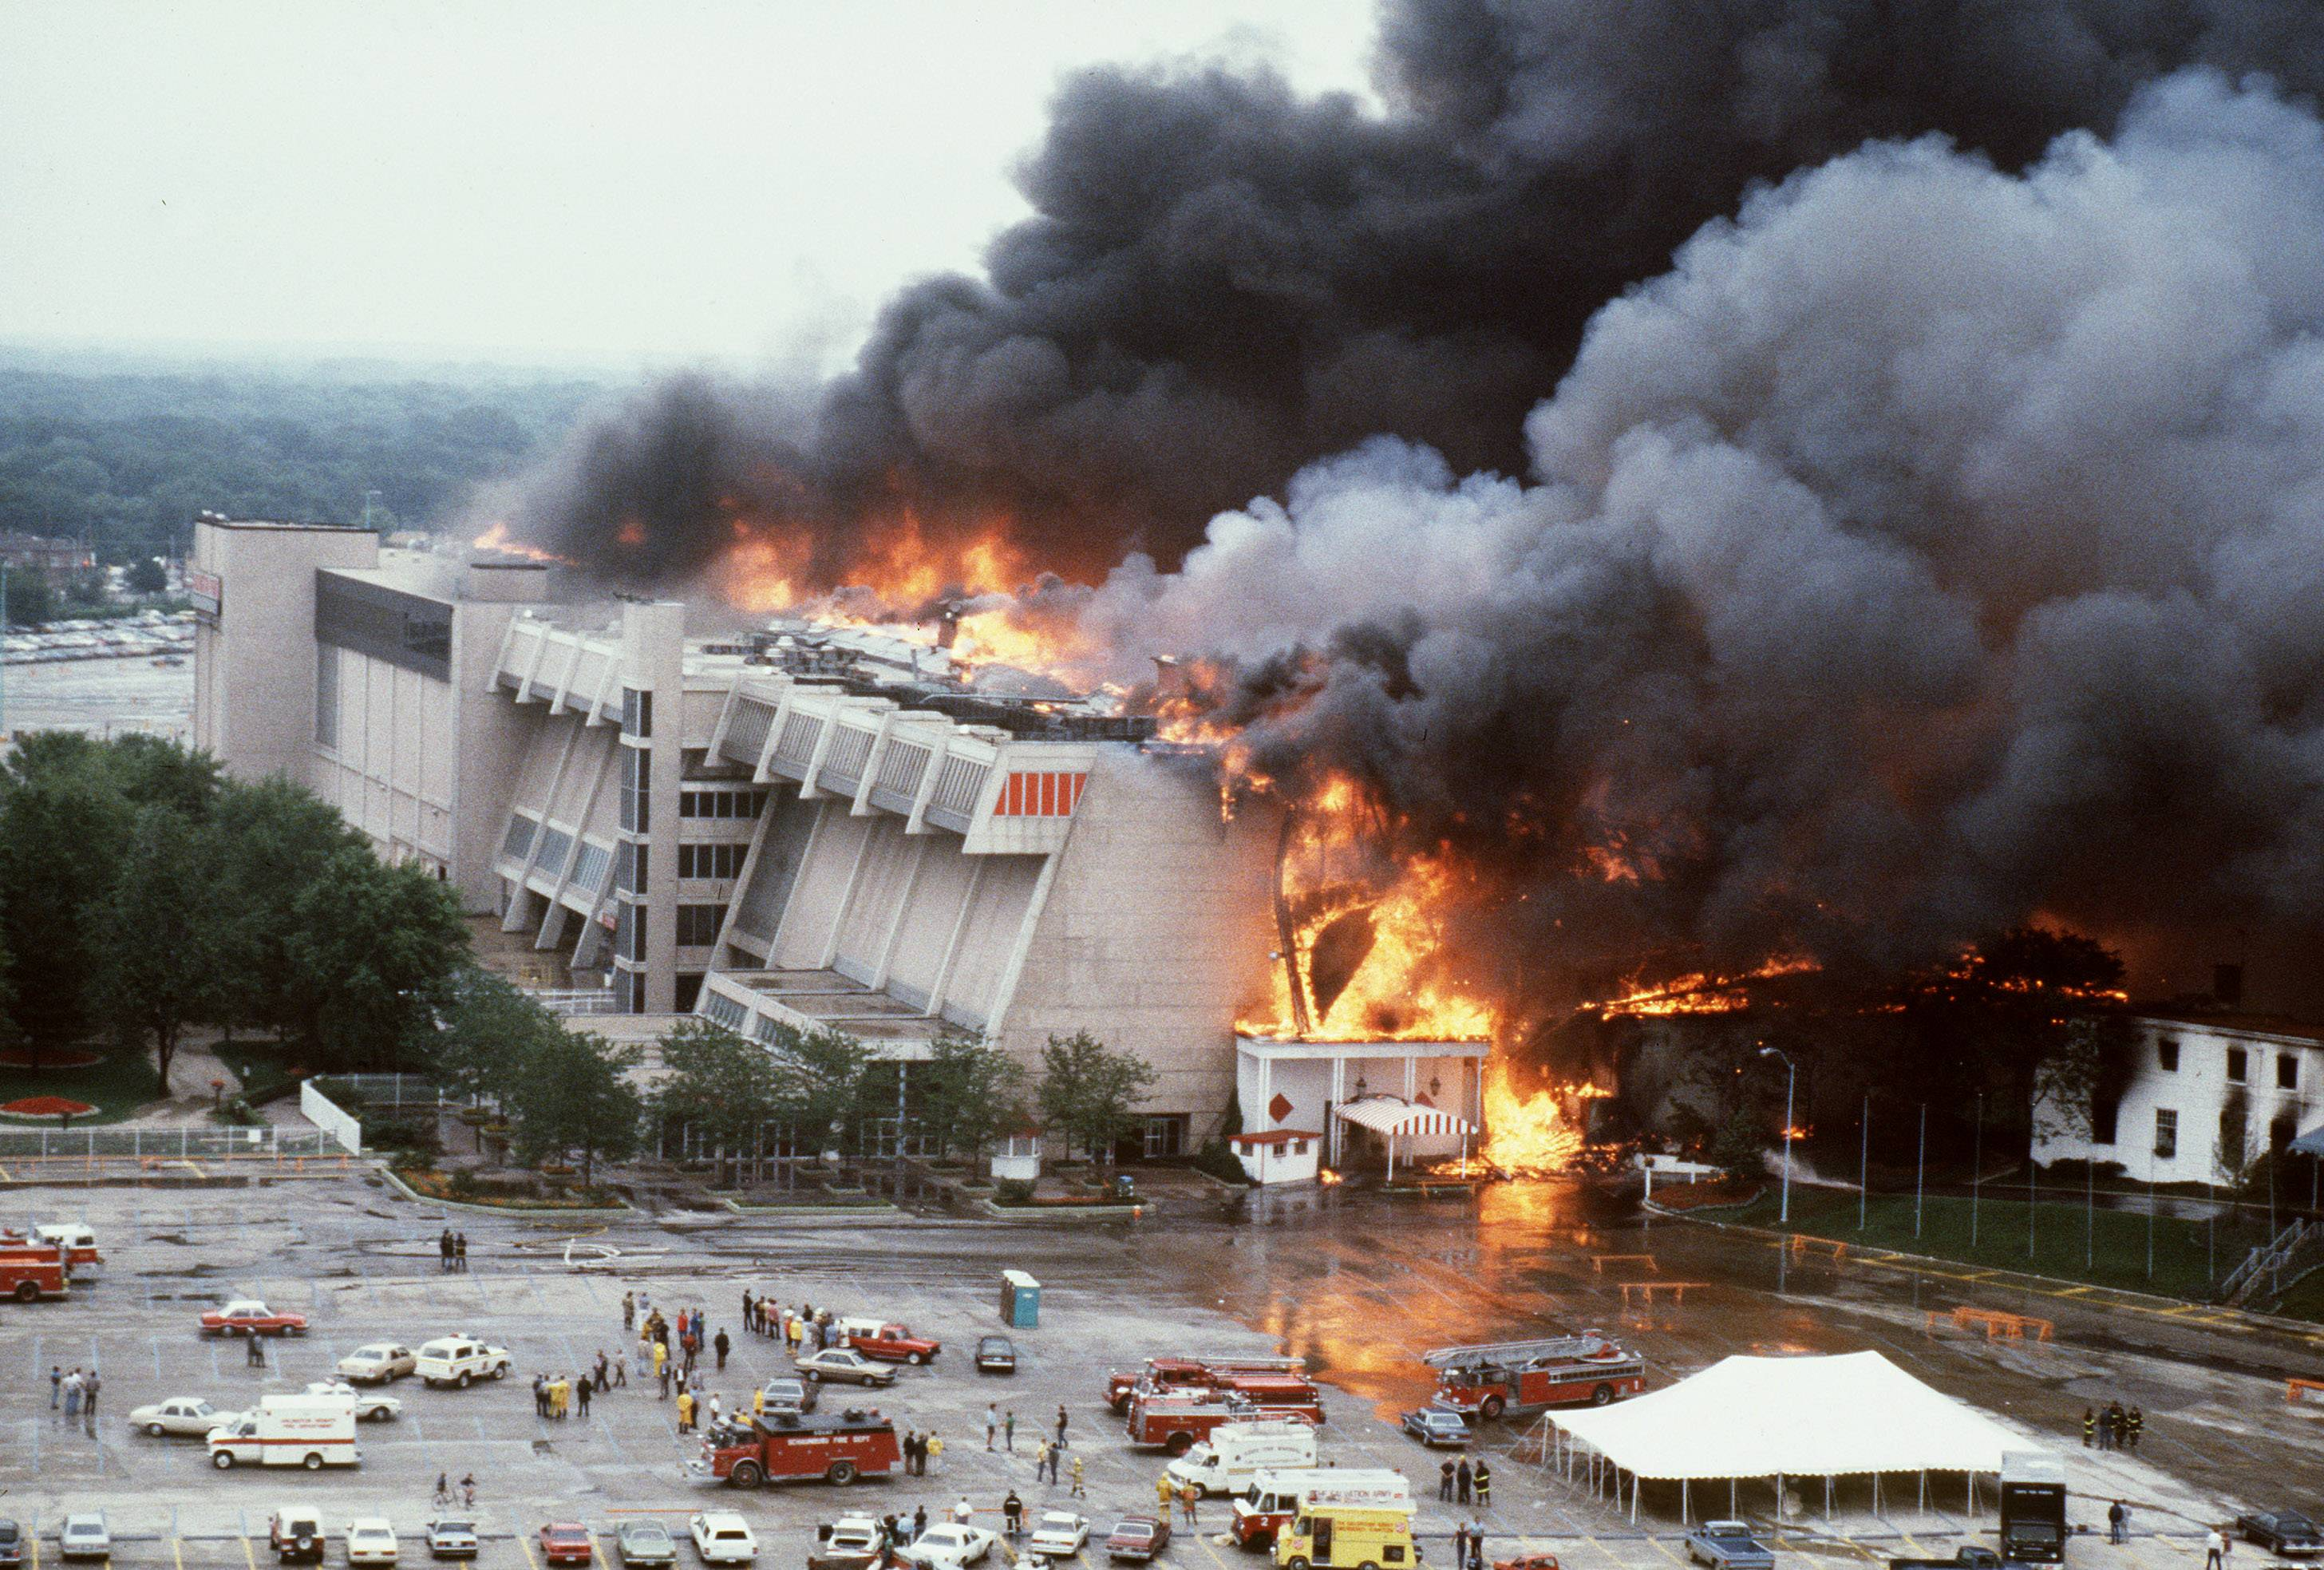 Images: 30th Anniversary of the Arlington Park Fire